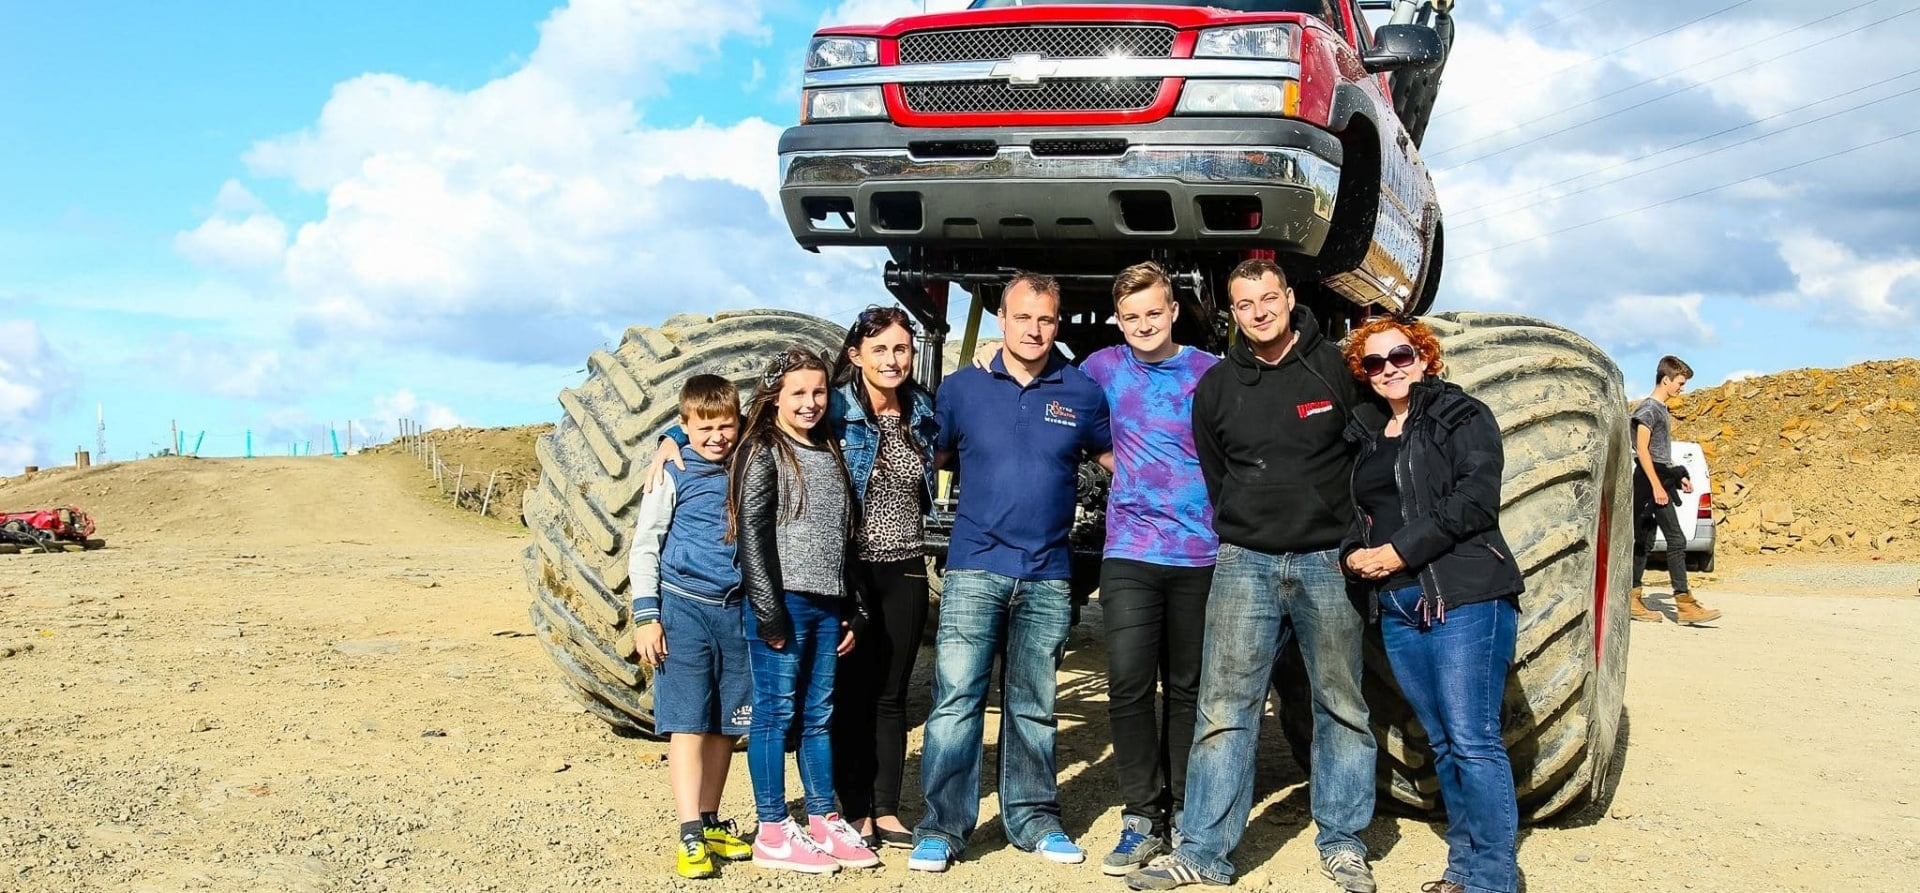 Family Monster Truck Passenger Ride Experience-1